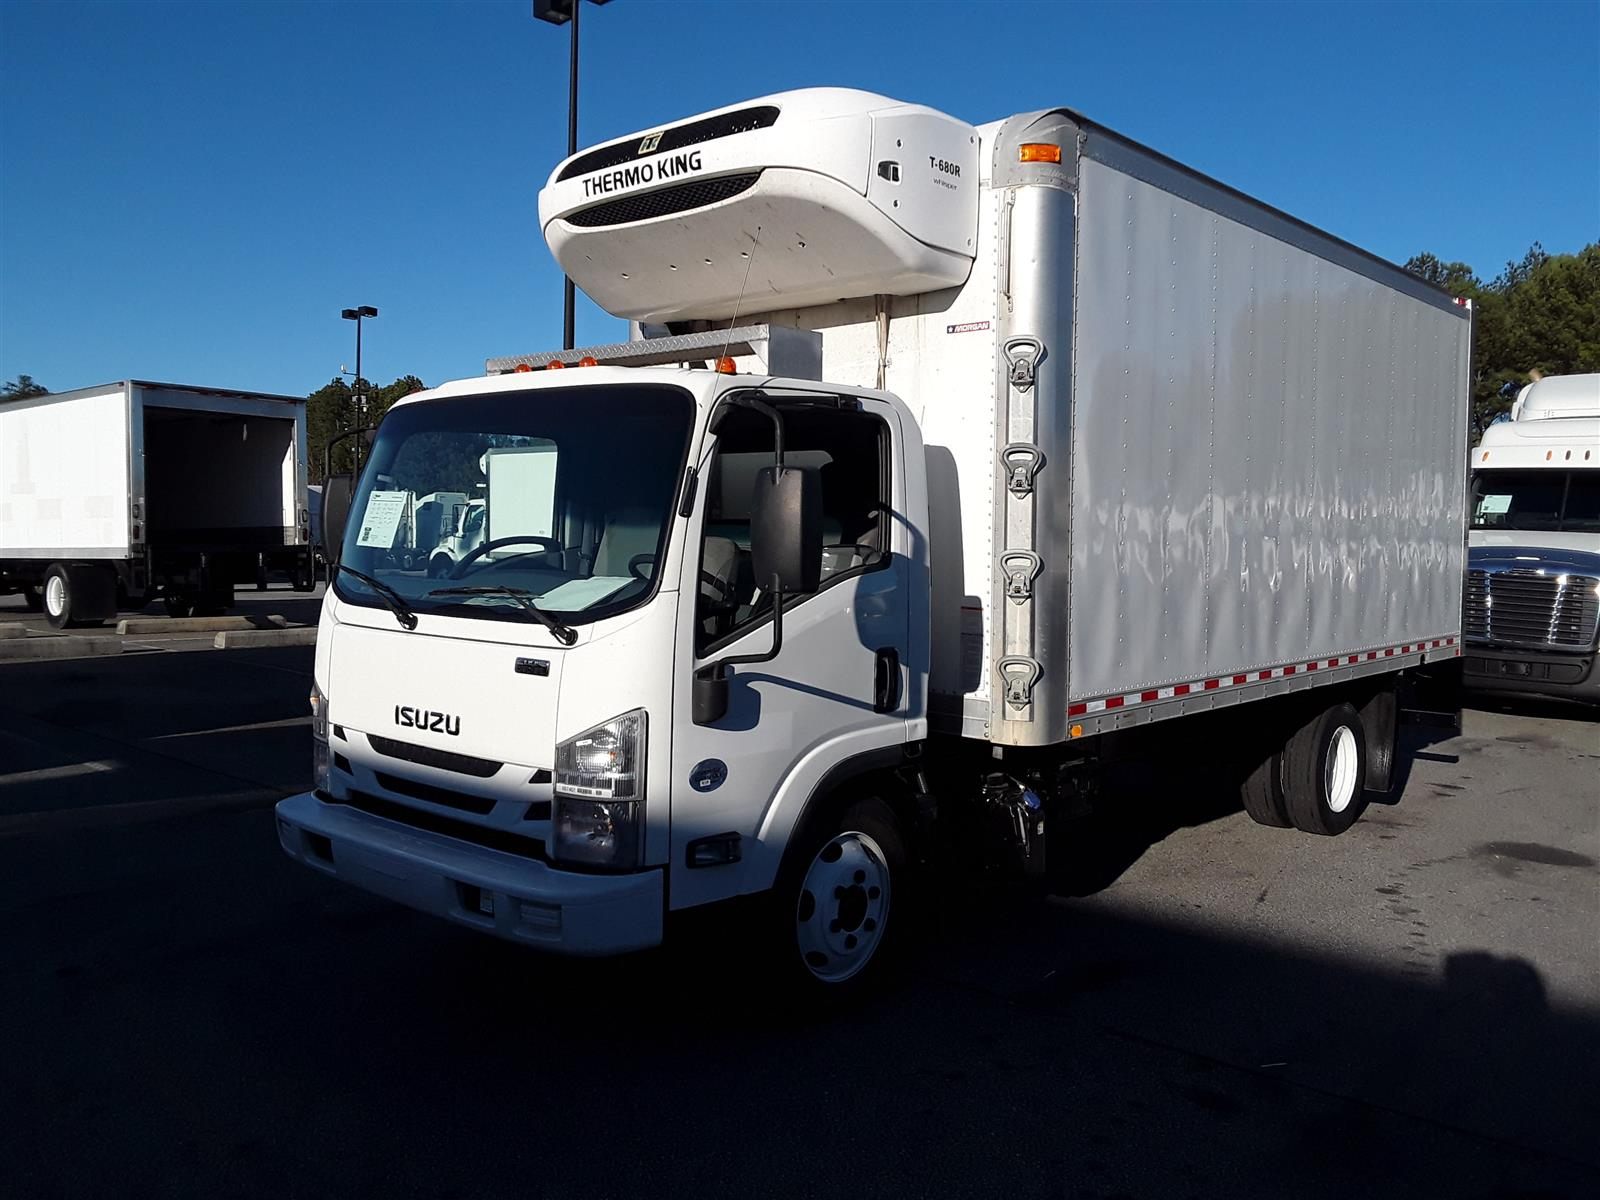 2016 Isuzu NRR Regular Cab 4x2, Refrigerated Body #667467 - photo 1